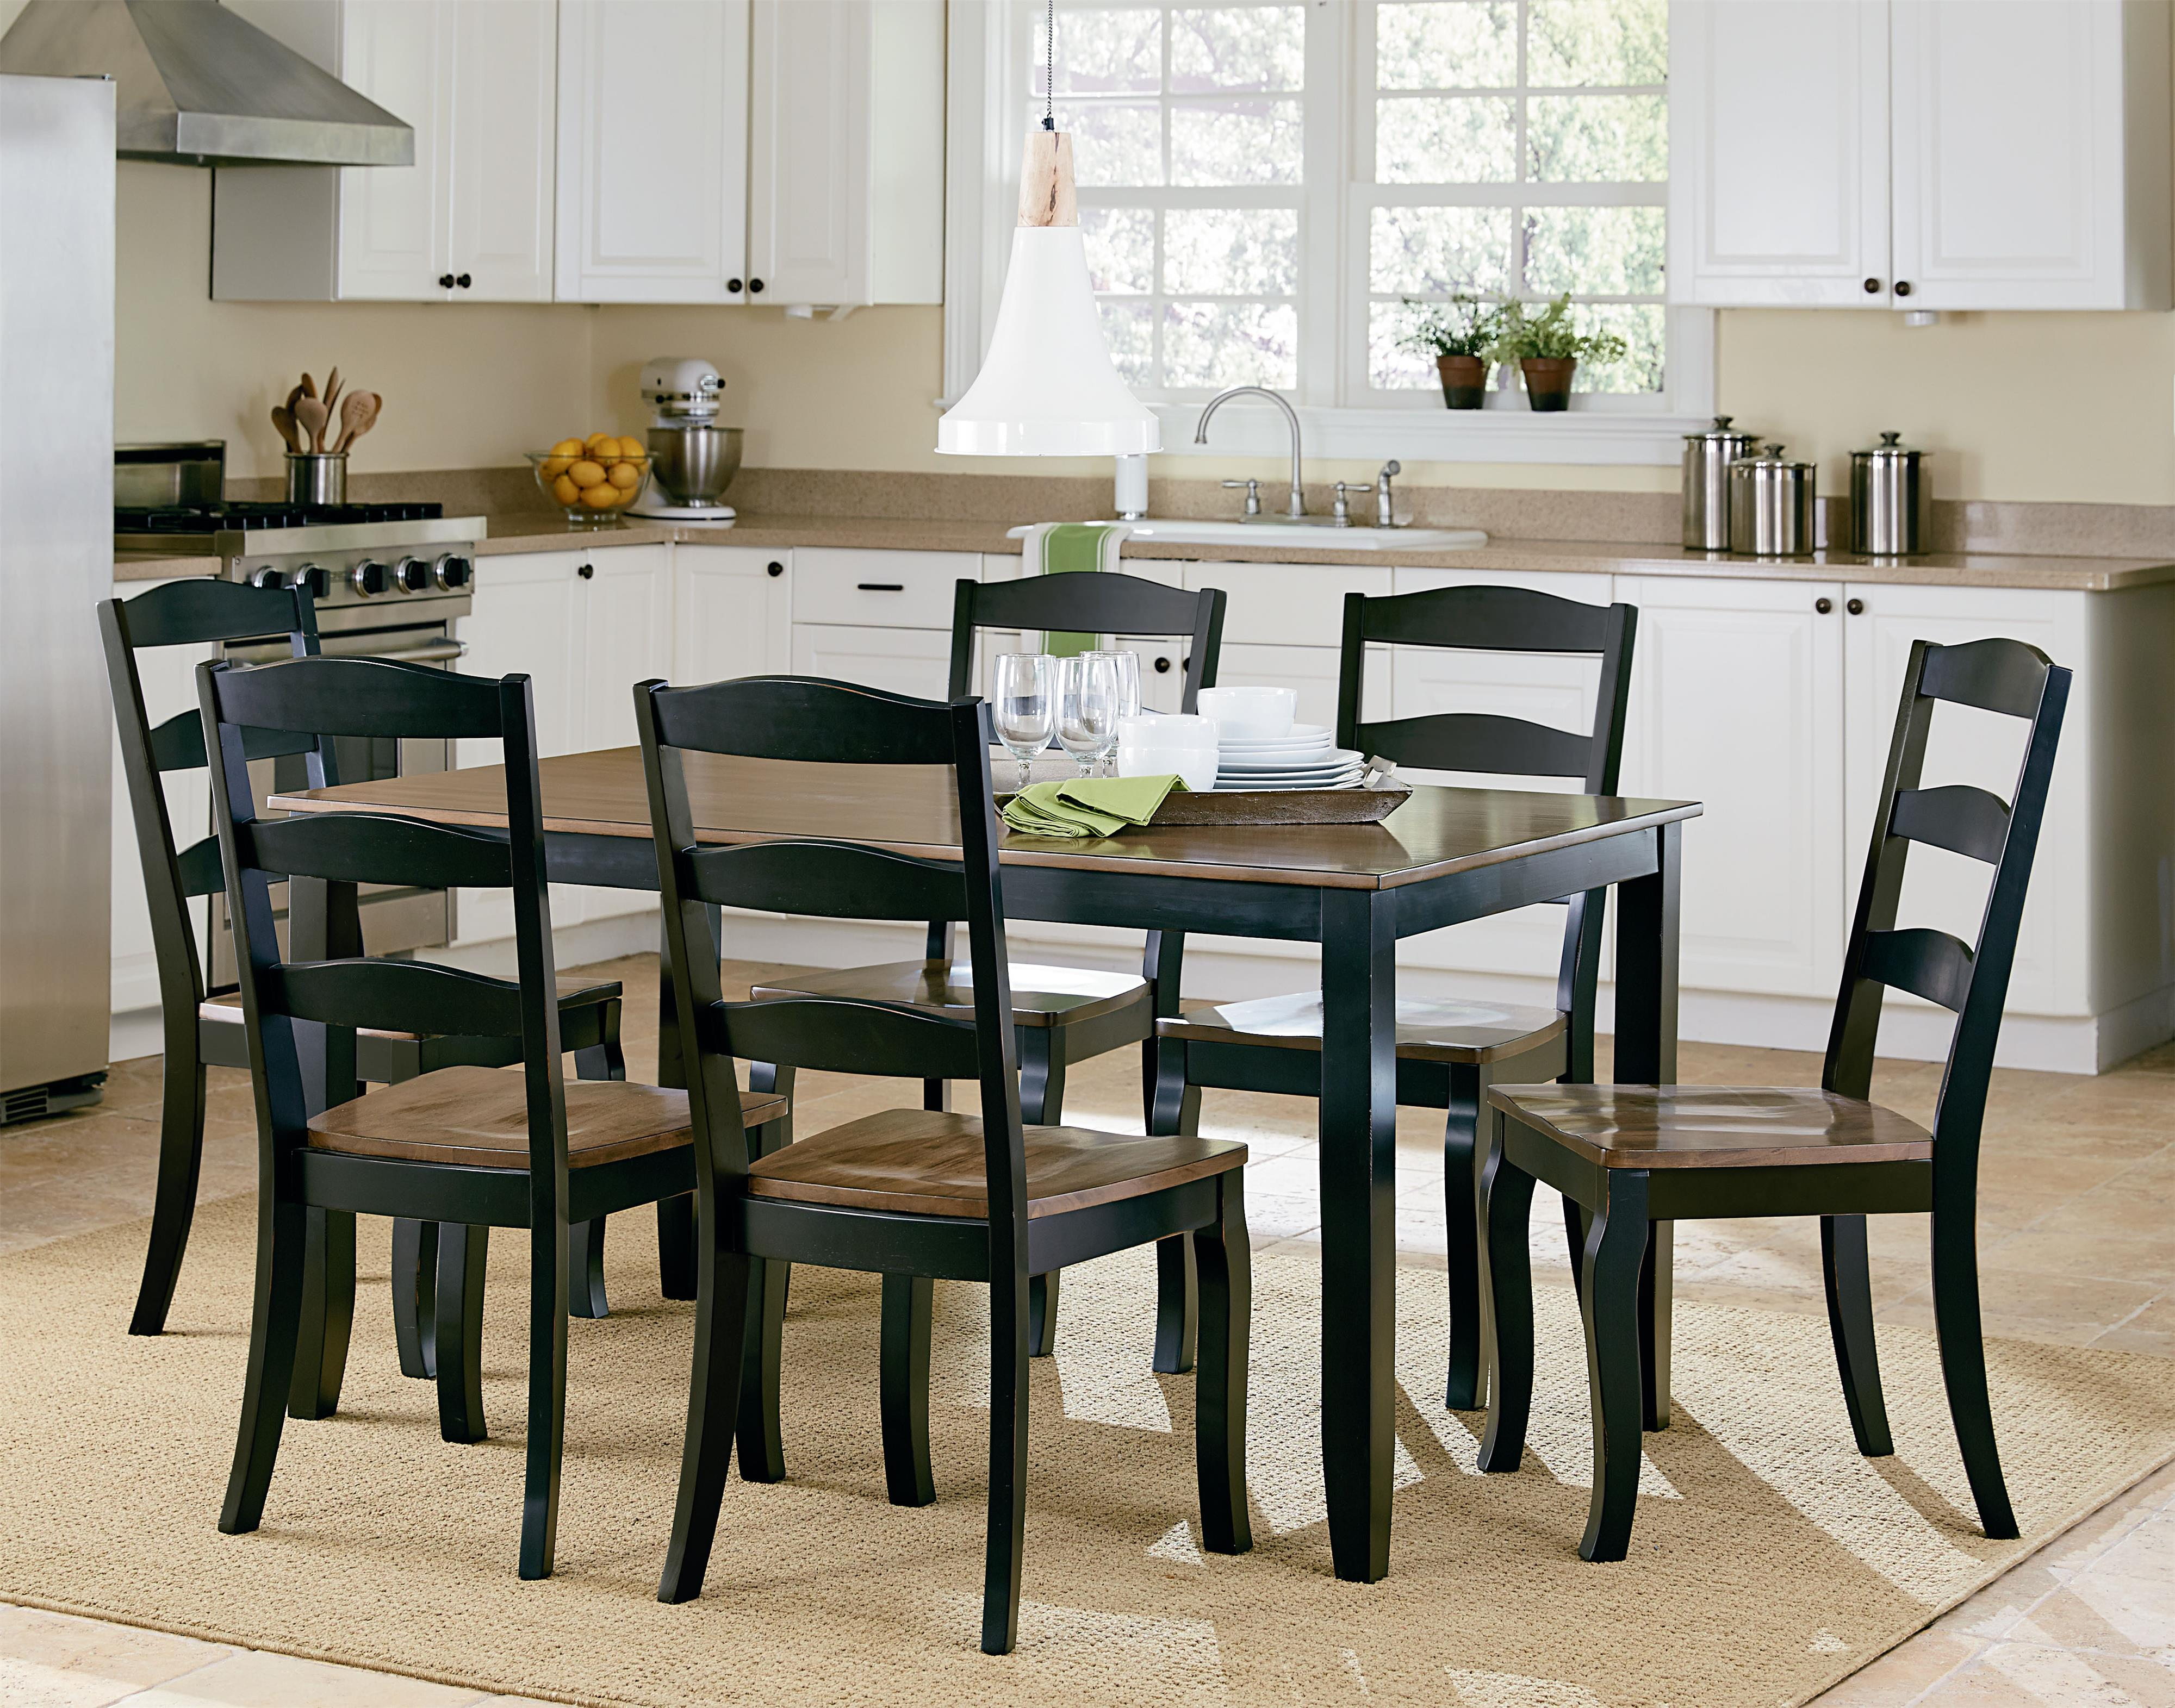 Standard Furniture Highland Black Table Set With Six Side Chairs   Standard  Furniture   Dining 7 (or More) Piece Sets Birmingham, Huntsville, Hoover,  ...